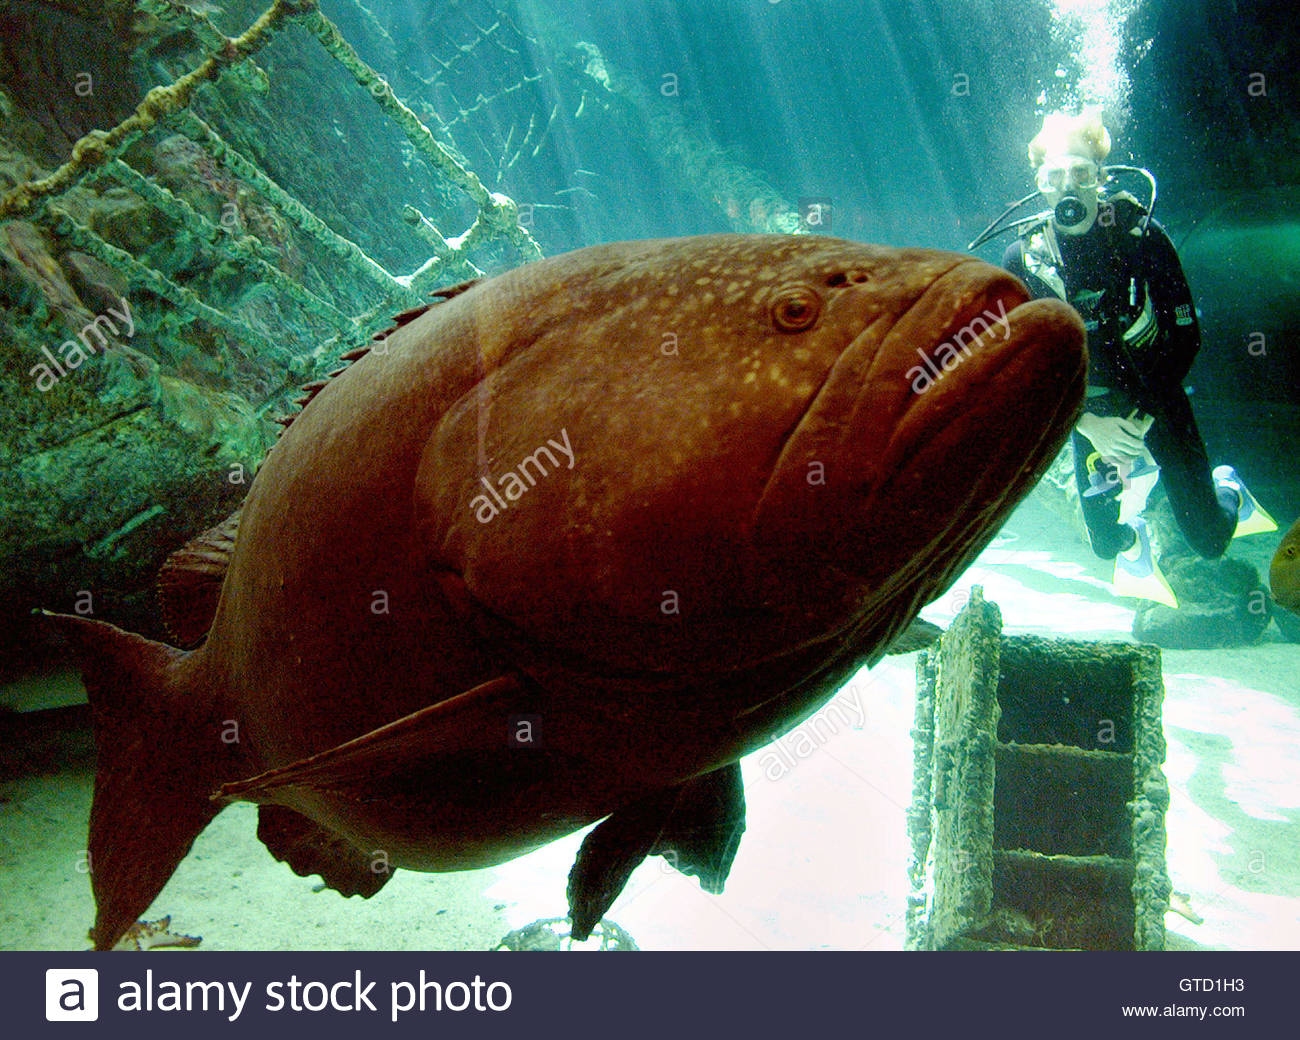 Fish tank queensland - A Giant 200 Kilogram Queensland Grouper Named Dominator Swims Past A Diver In The Great Barrier